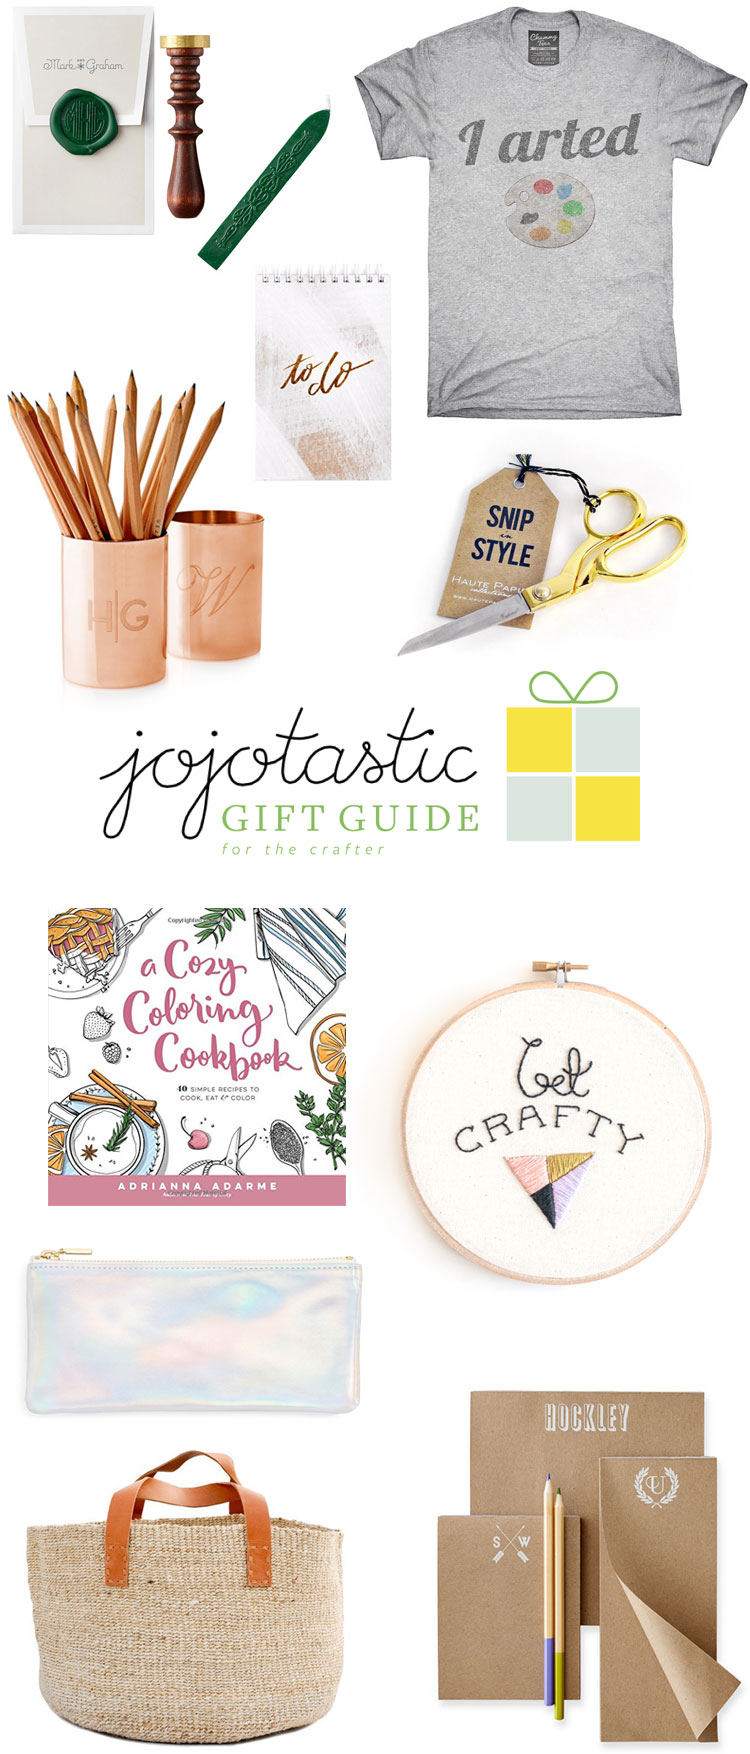 the ultimate gift guide for the crafter / crafter person in your life! loads of creative gift ideas — more on Jojotastic.com